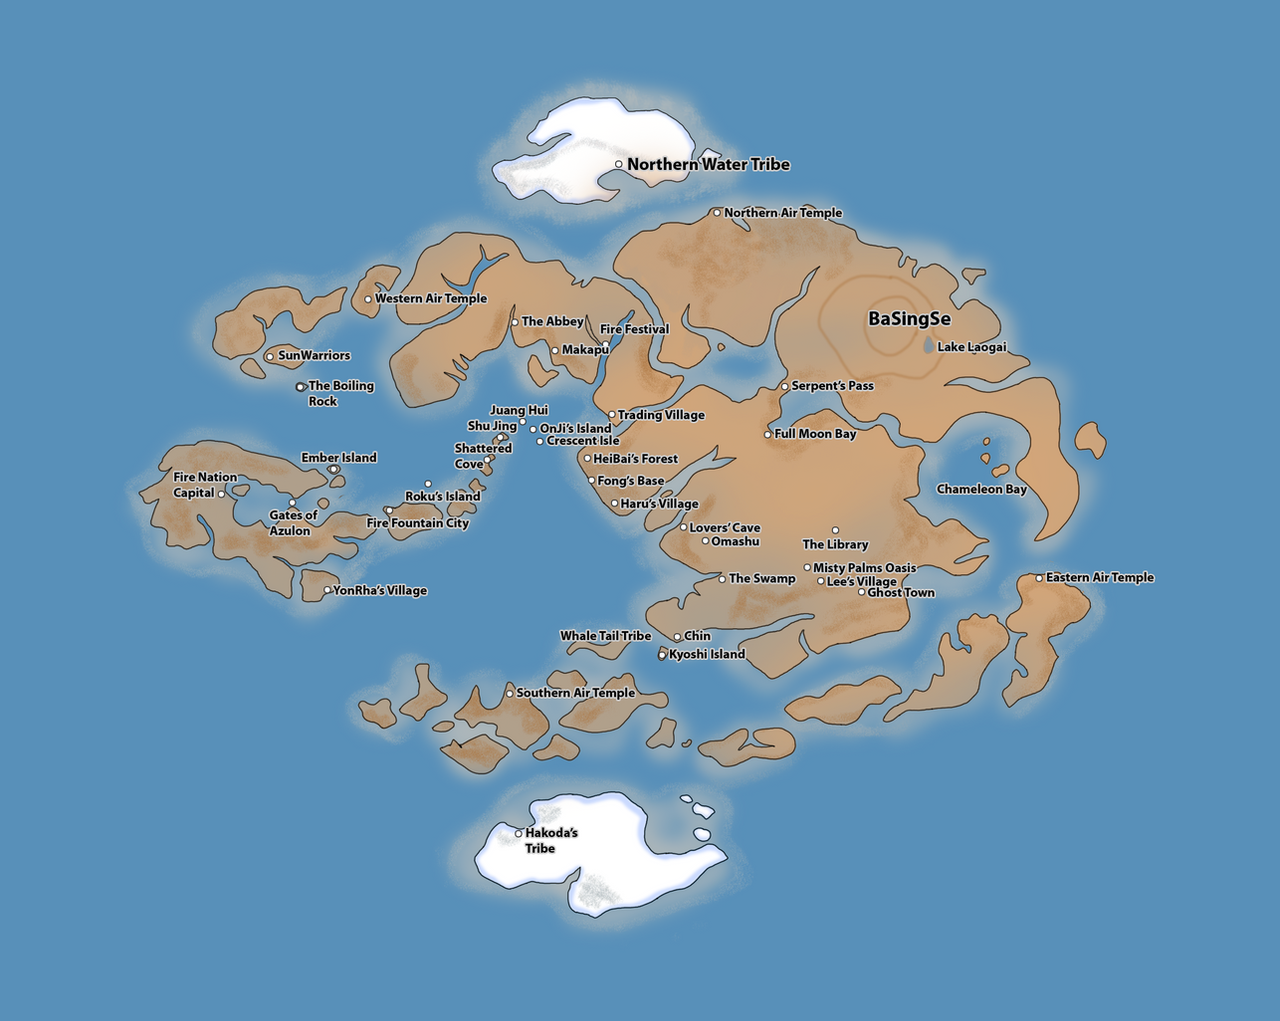 Avatar The Last Airbender Wallpaper Map Download